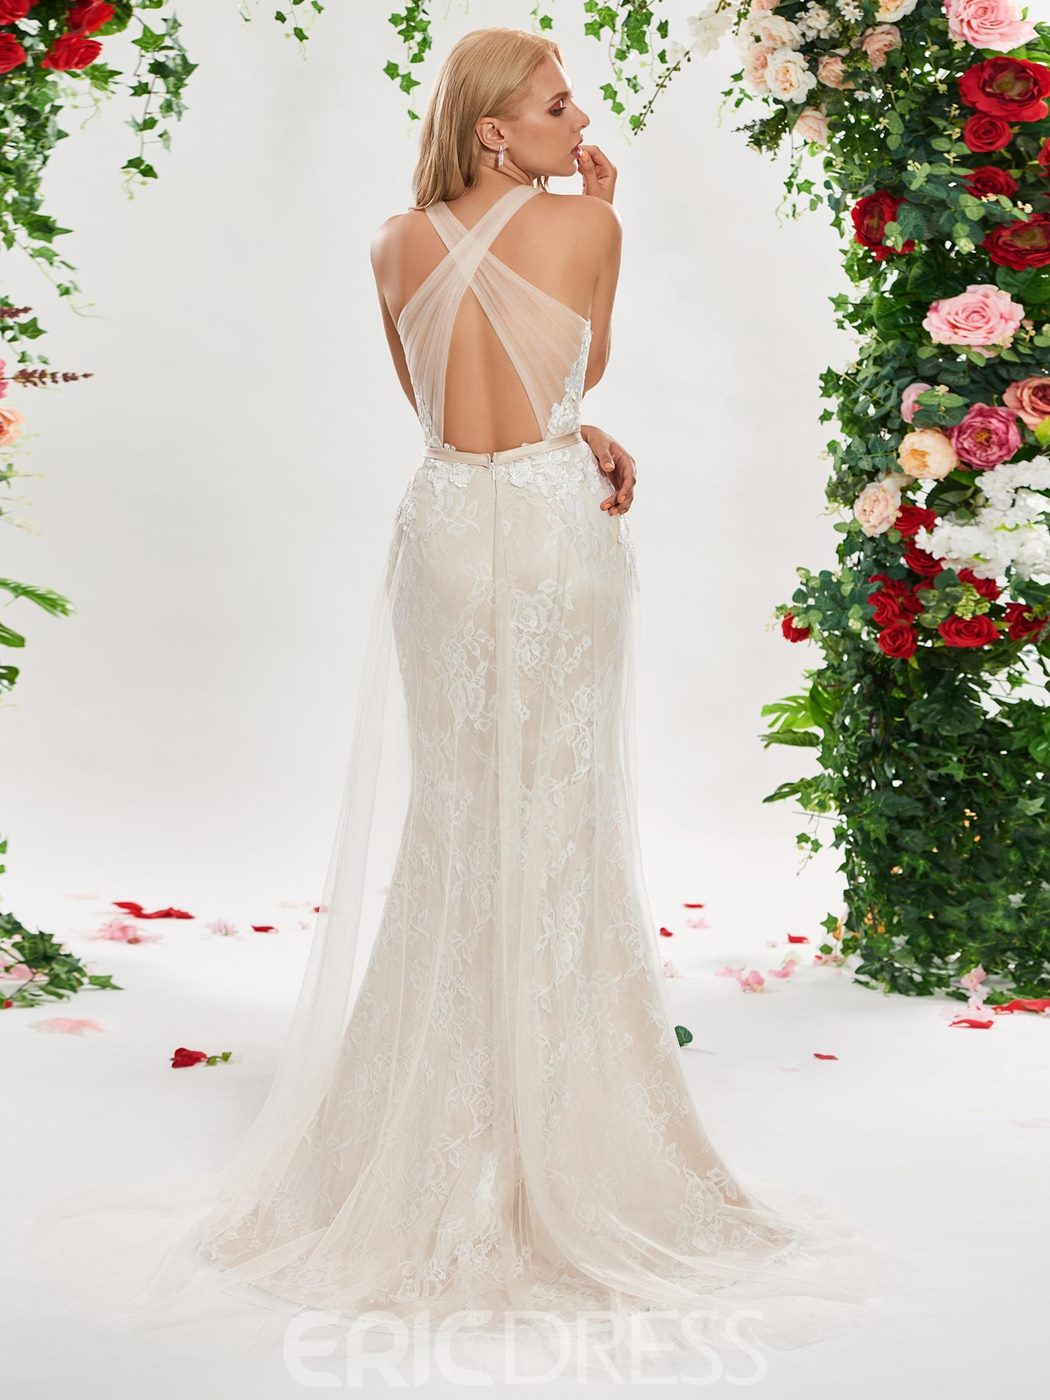 Mermaid Lace Backless Wedding Dress